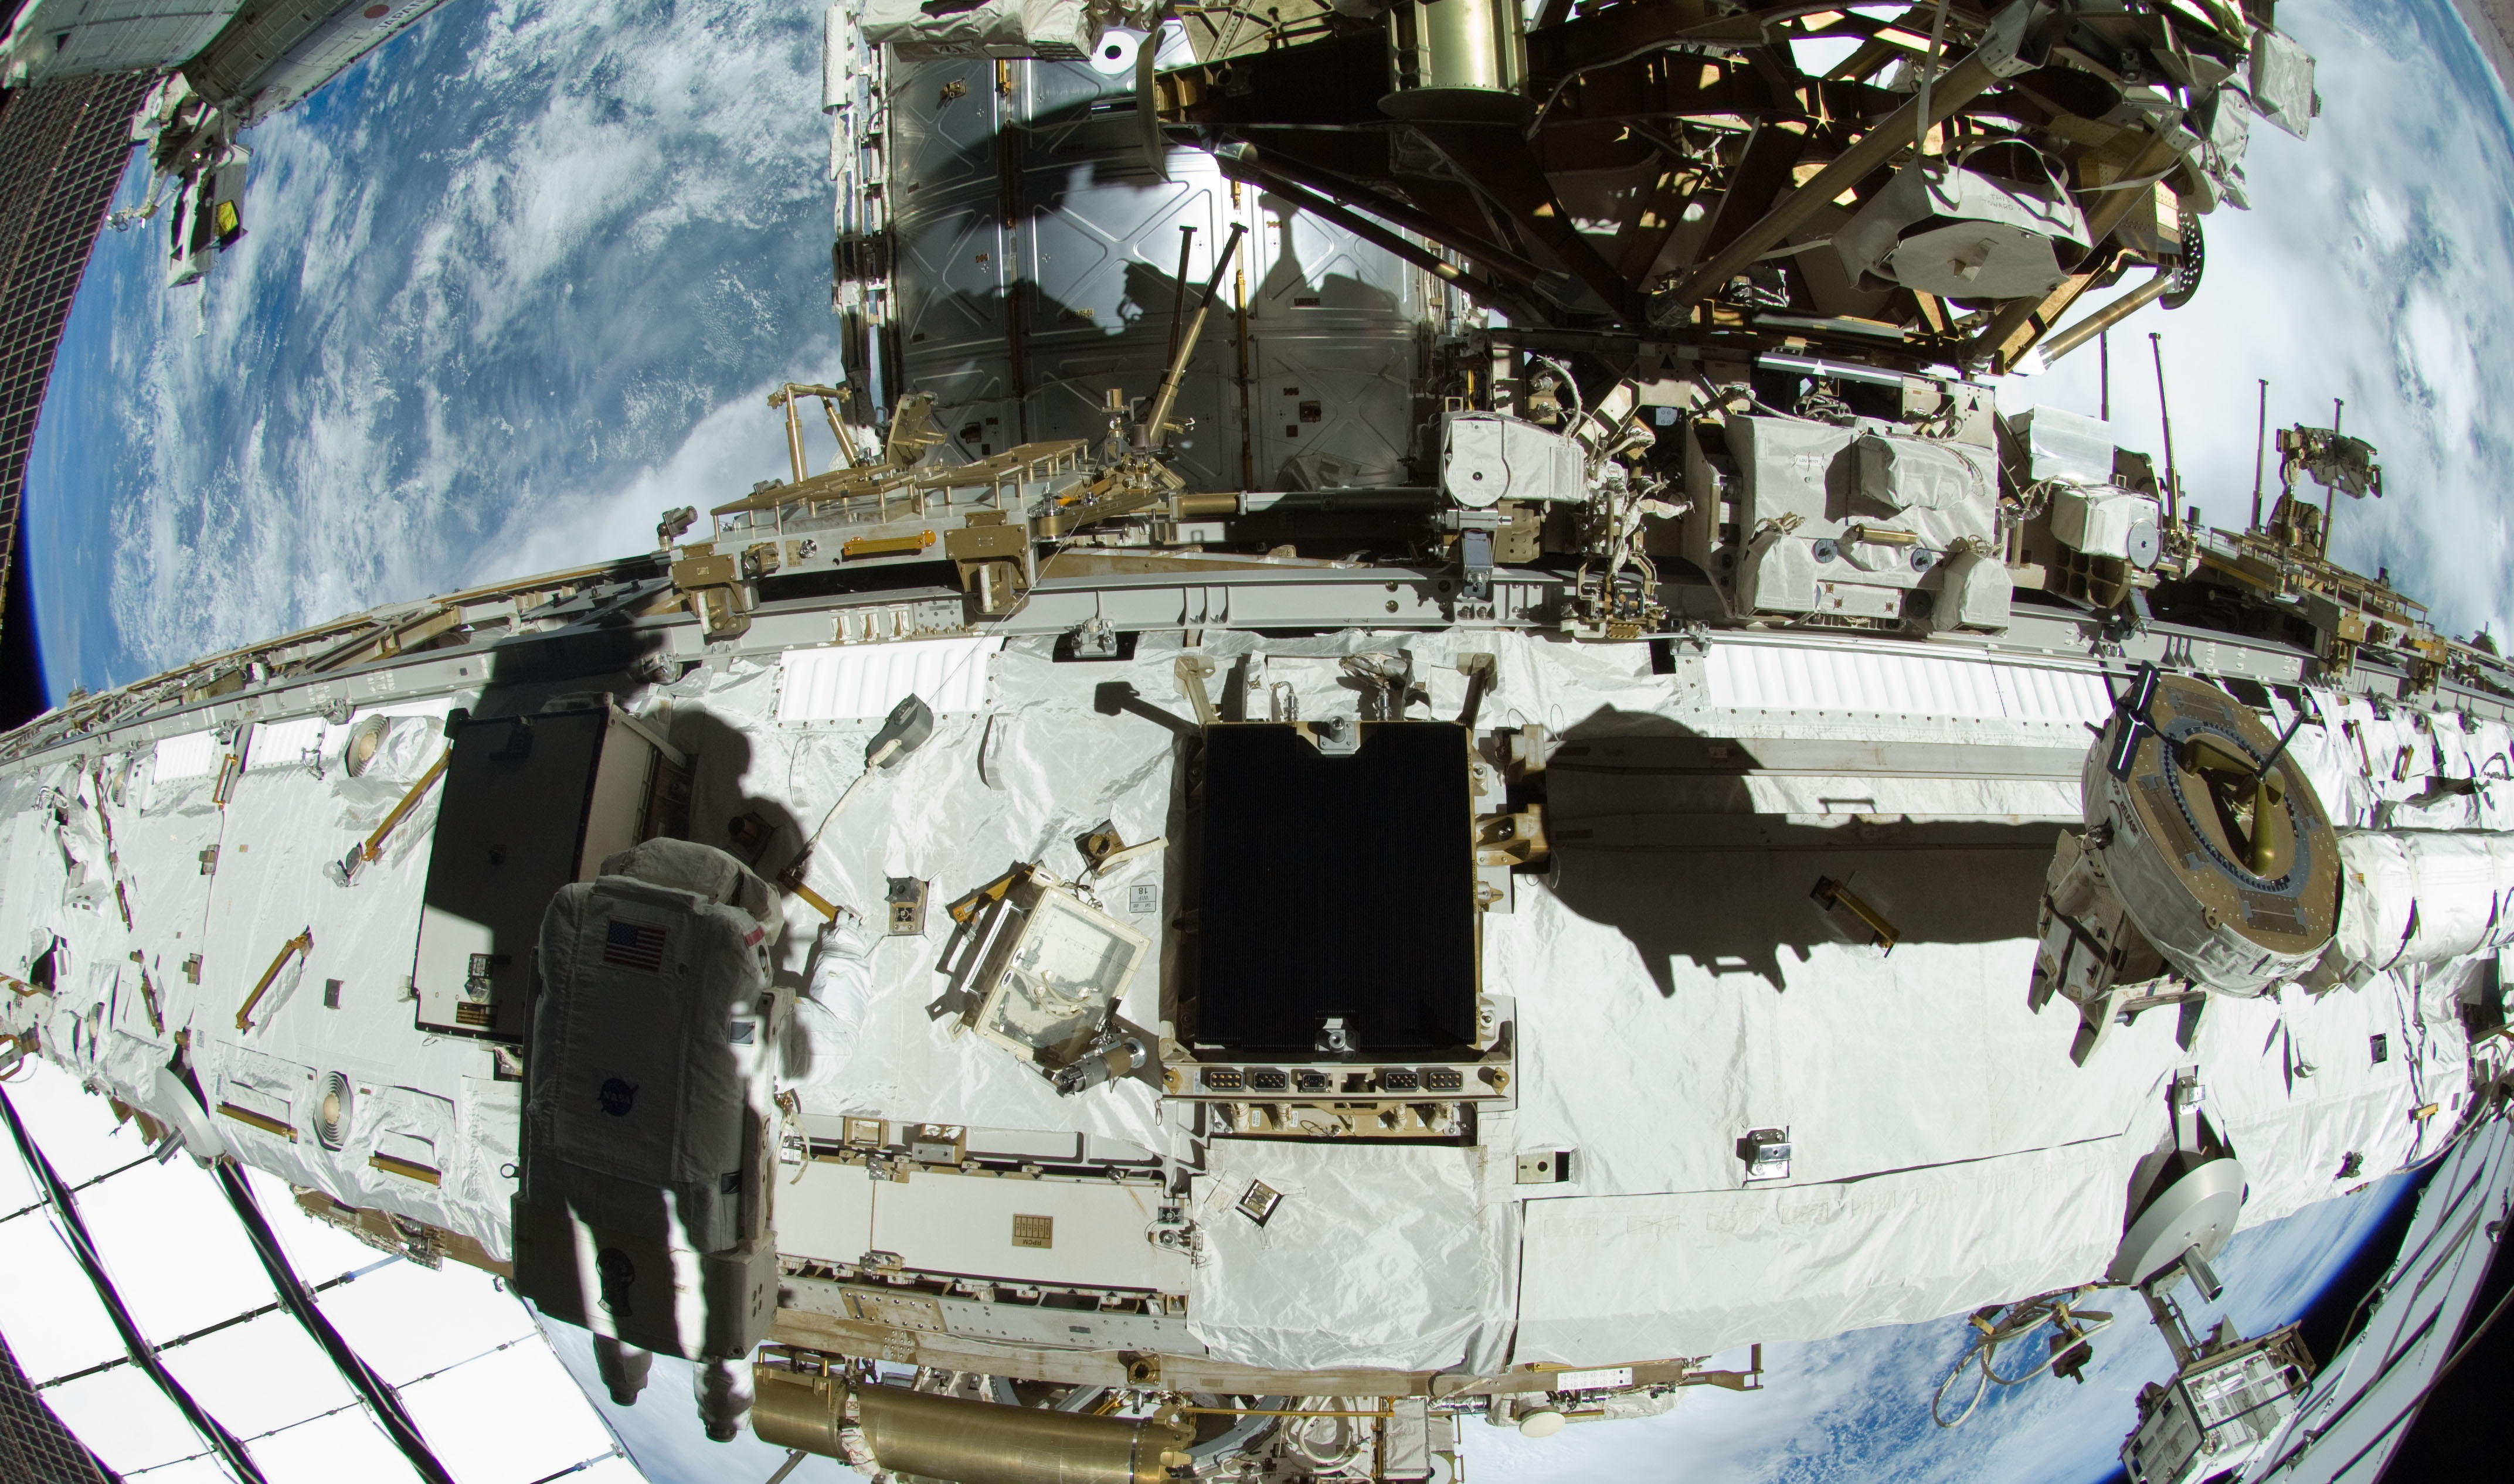 Iss Robots Successfully Replace Critical Power Switching Unit Faulty Circuitbreaker Box On The Orbiting Lab Maneuver Marks Suni Williams Working Near Mbsu 1 Us Eva 18 In 2012 Photo Nasa Looking Into Failure